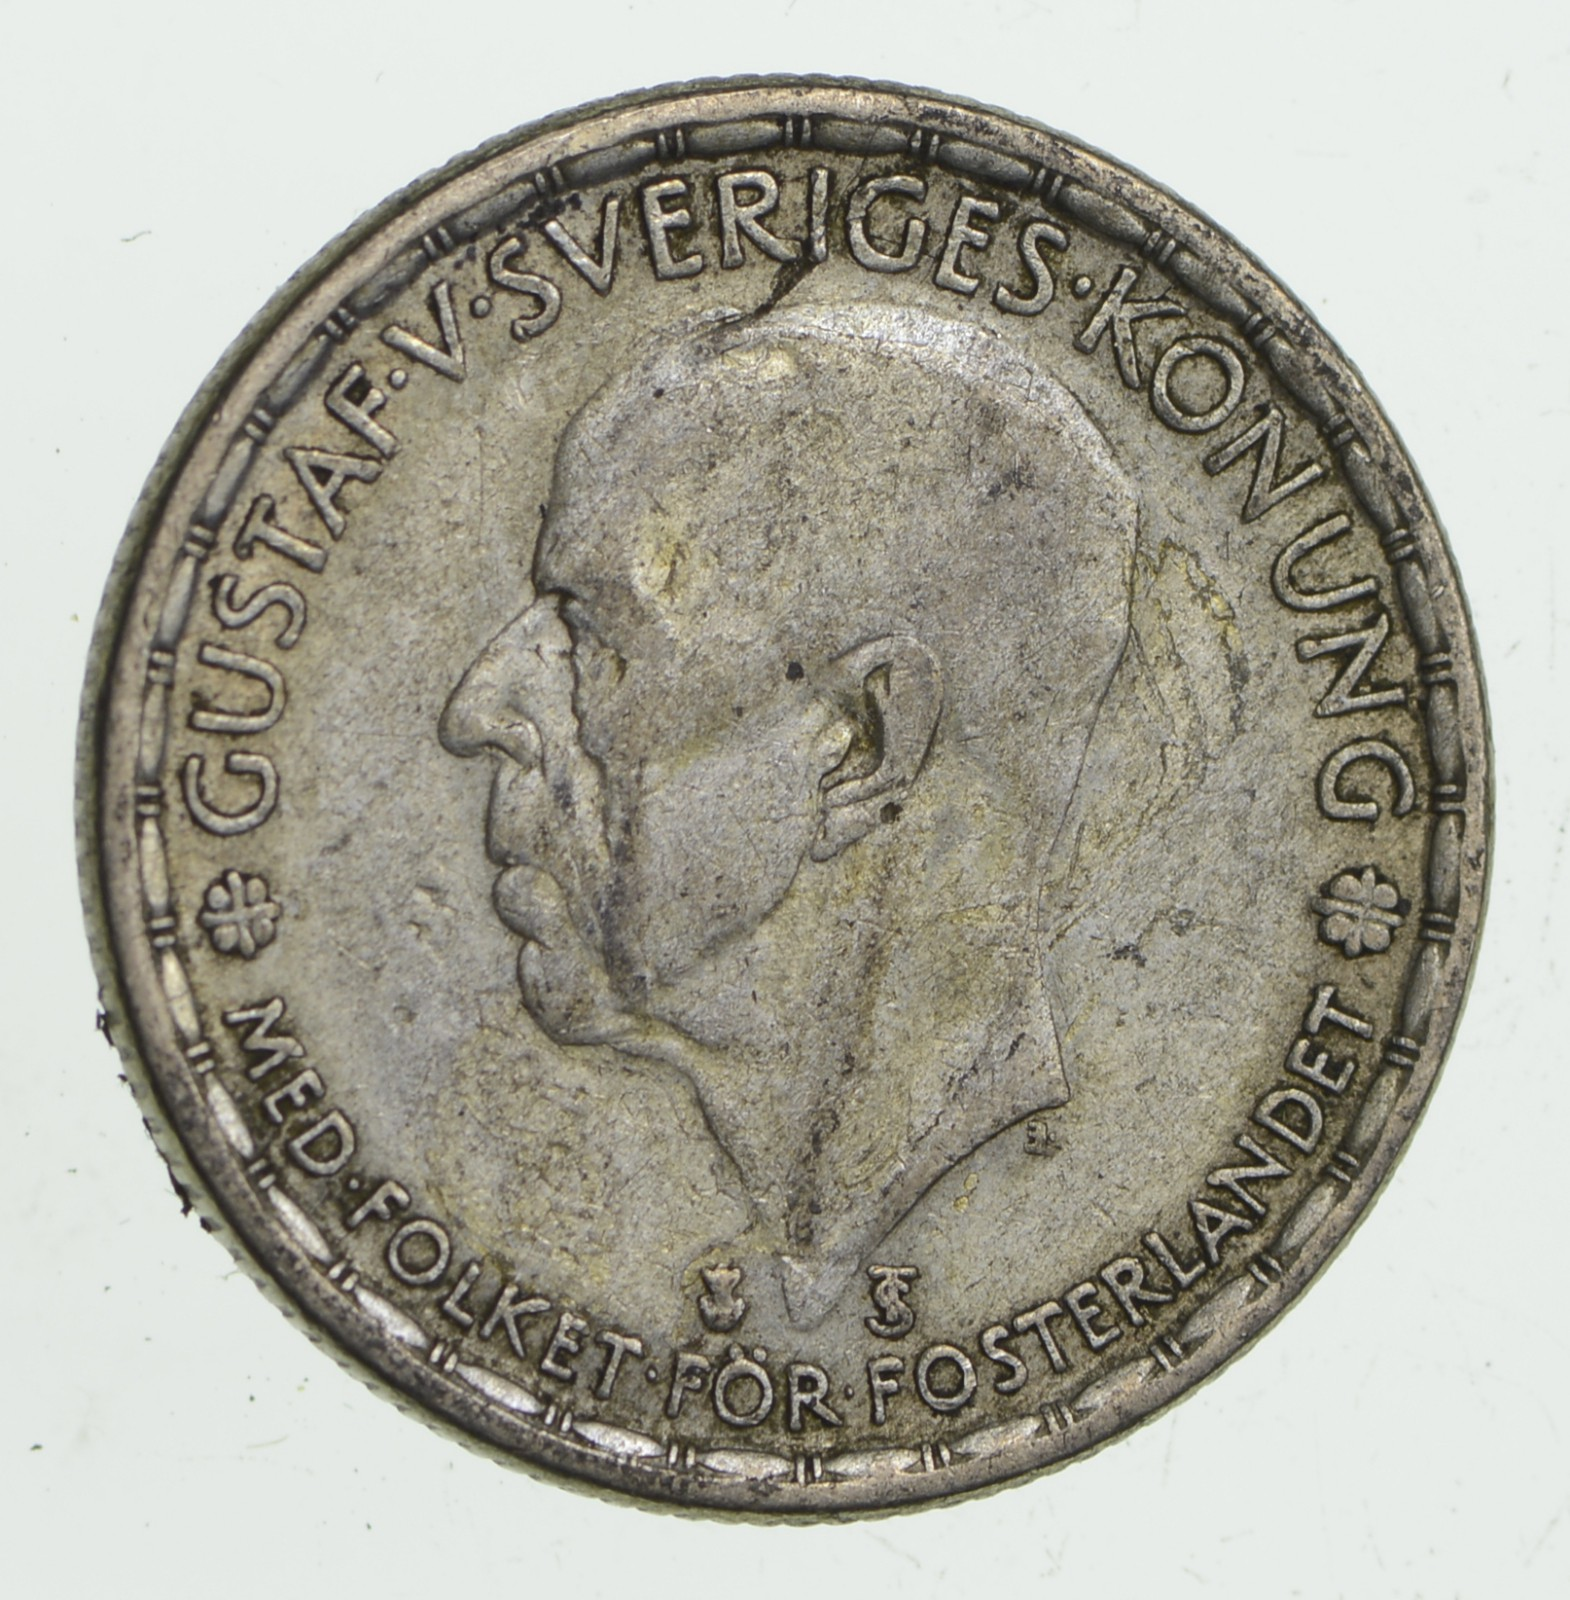 SILVER - Roughly the Size of a Quarter 1947 Sweden 1 Krona ...